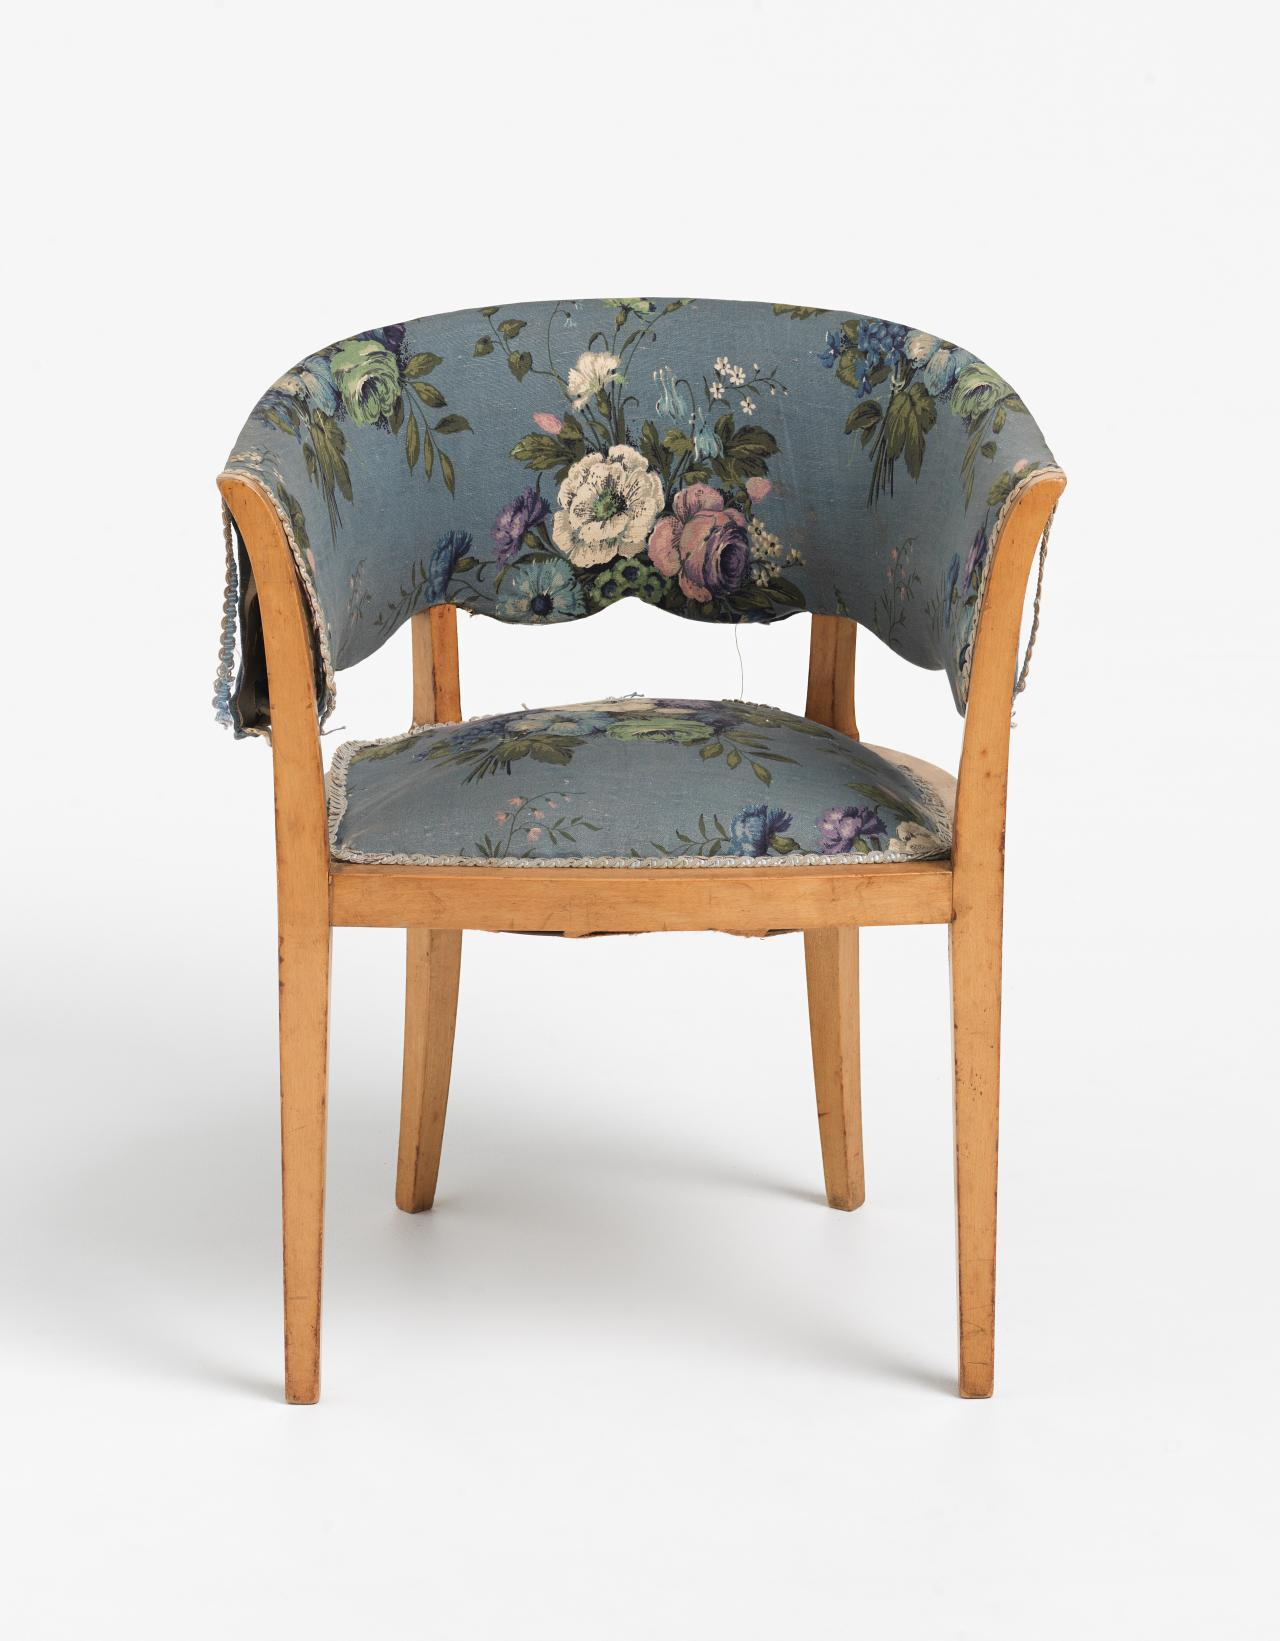 Bedroom chair, from the Langer apartment